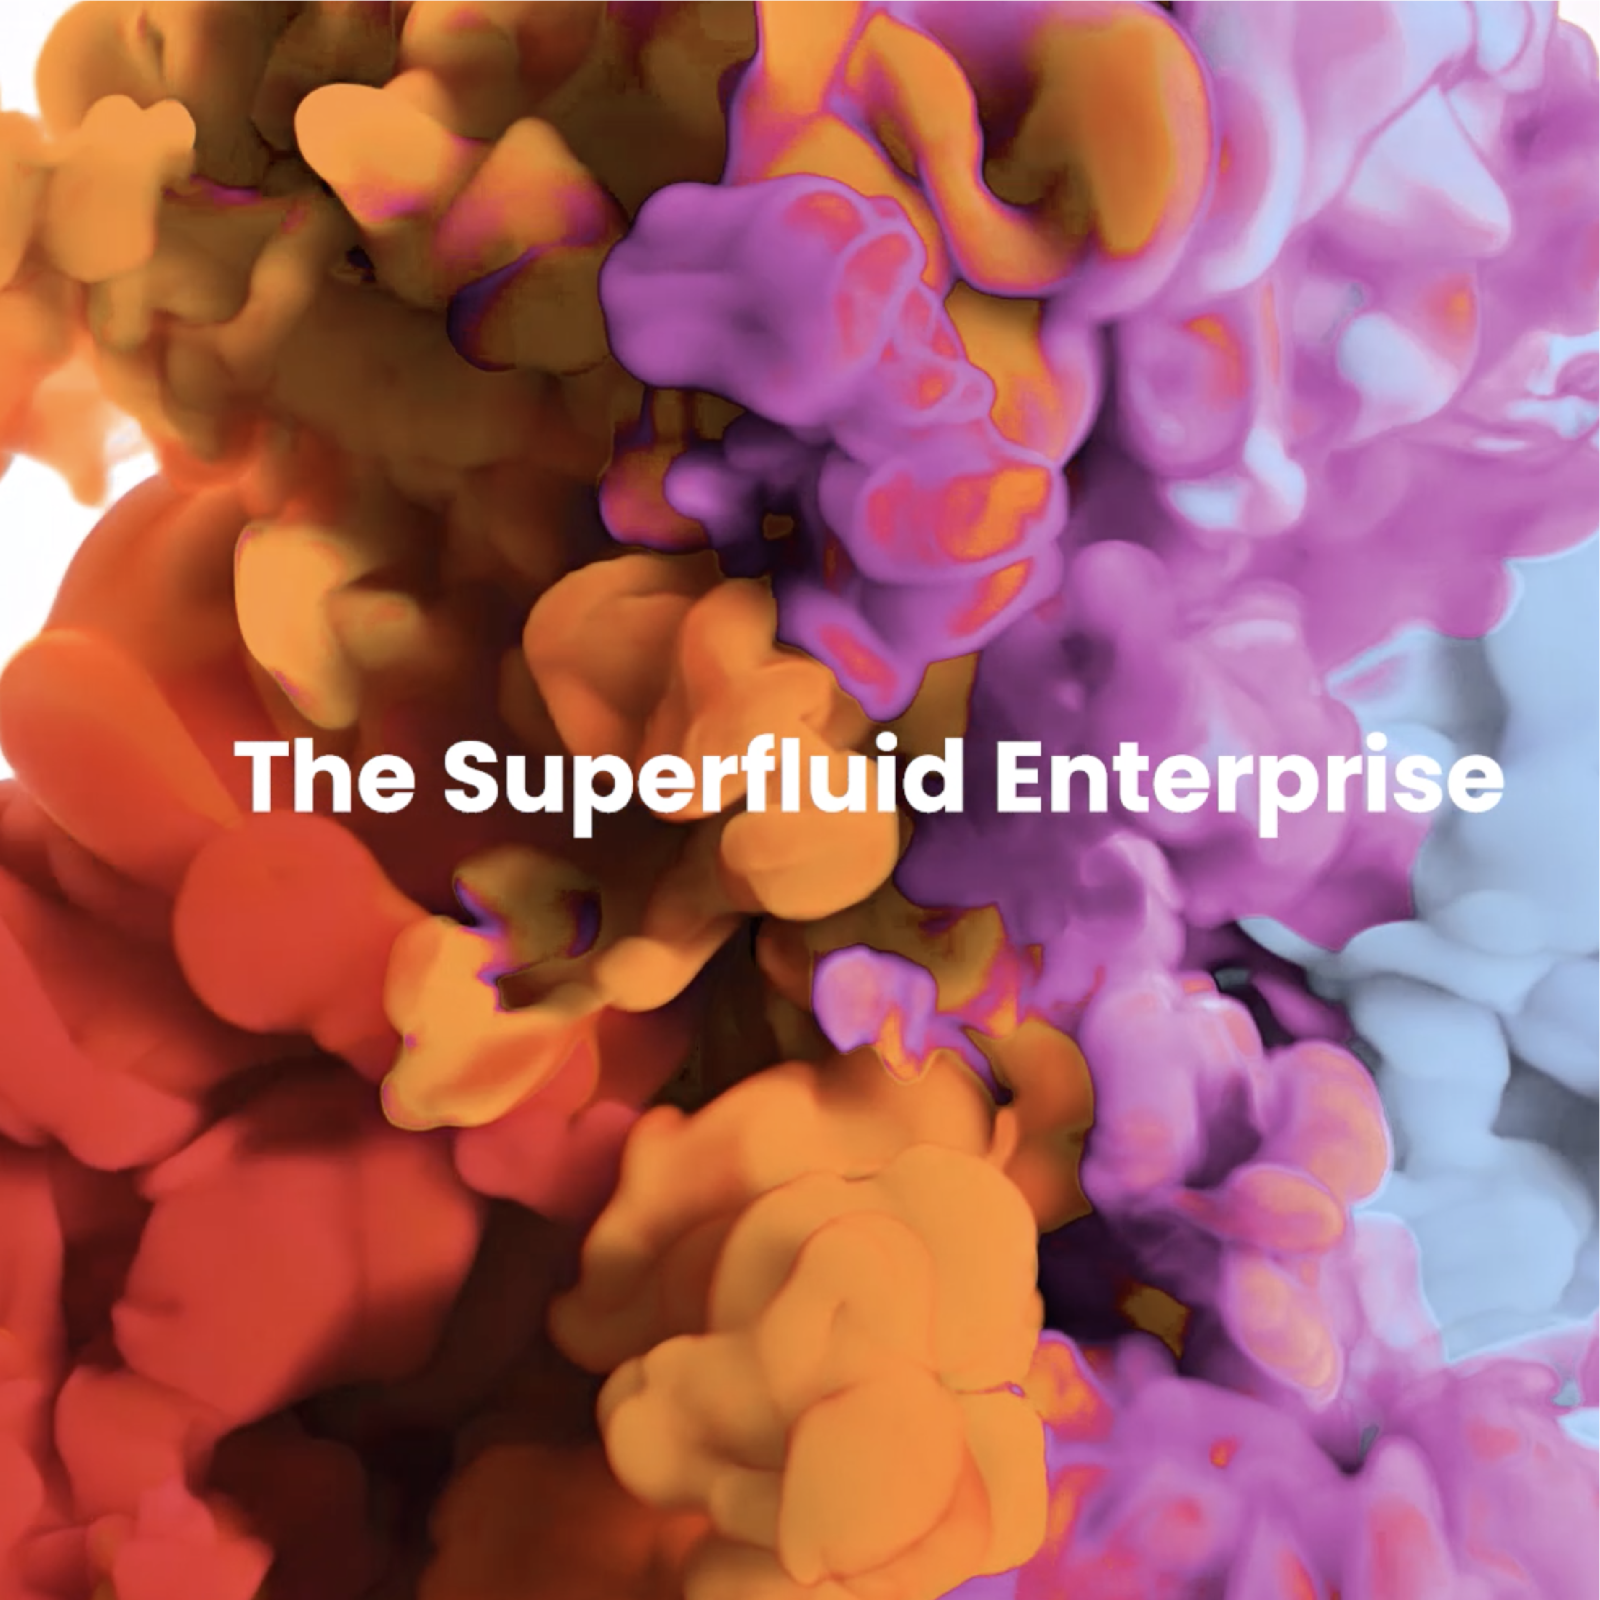 superfluid enterprise